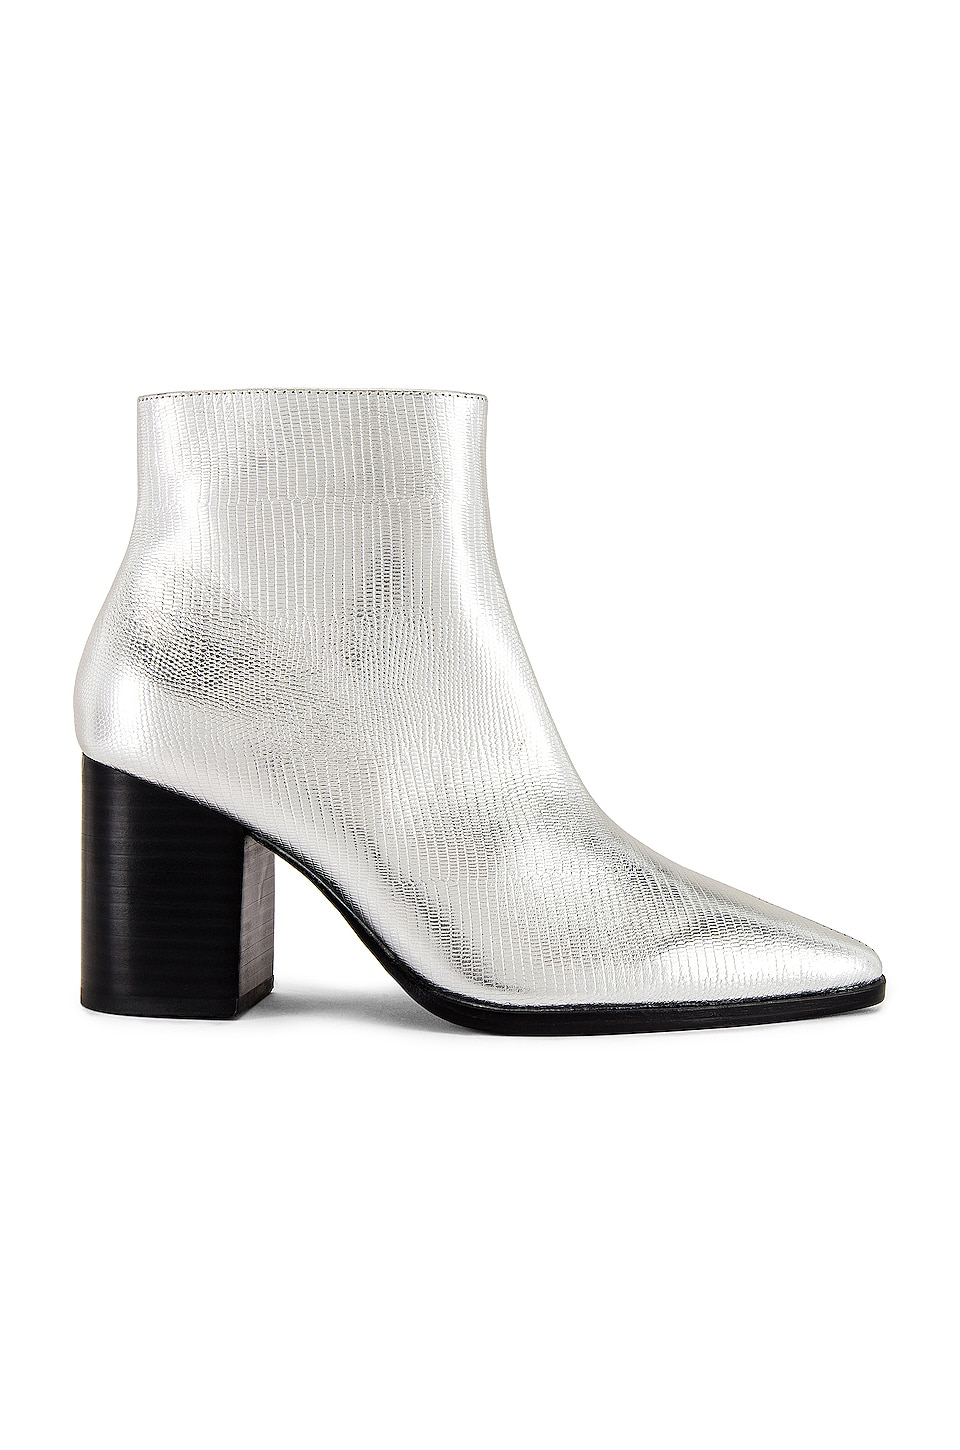 House of Harlow 1960 x REVOLVE Jack Bootie in Silver